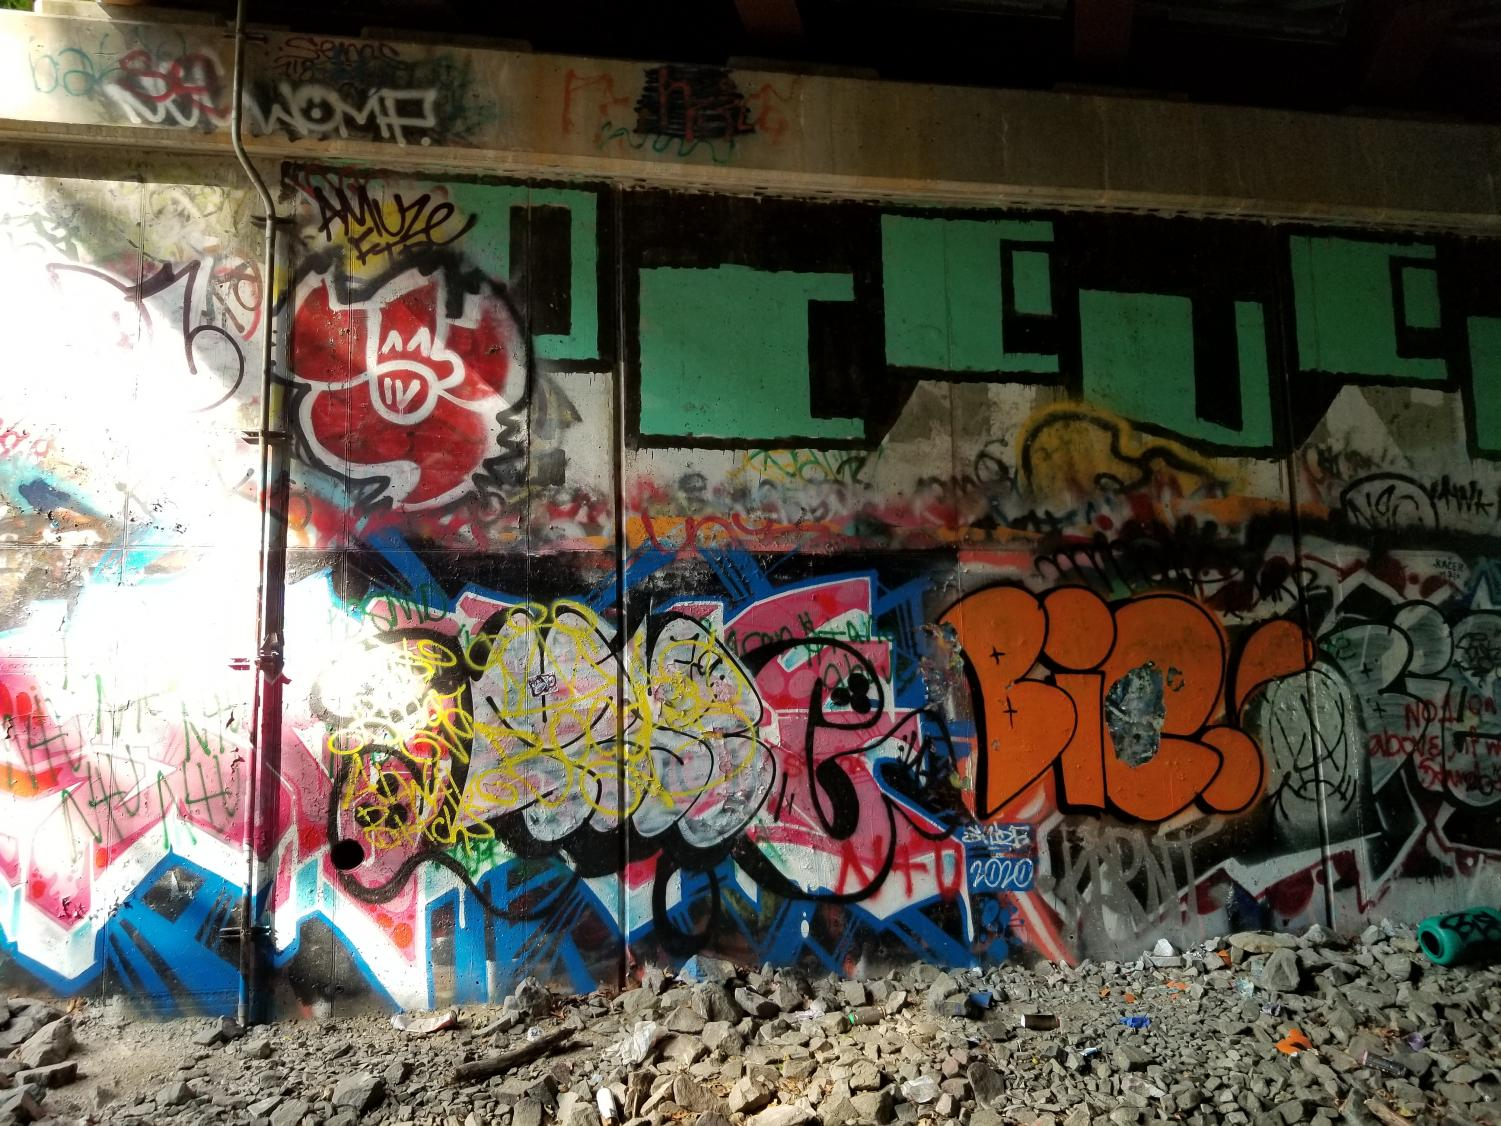 Neglected underpasses and walls become local hotspots as graffiti writers find time and space to execute their work.